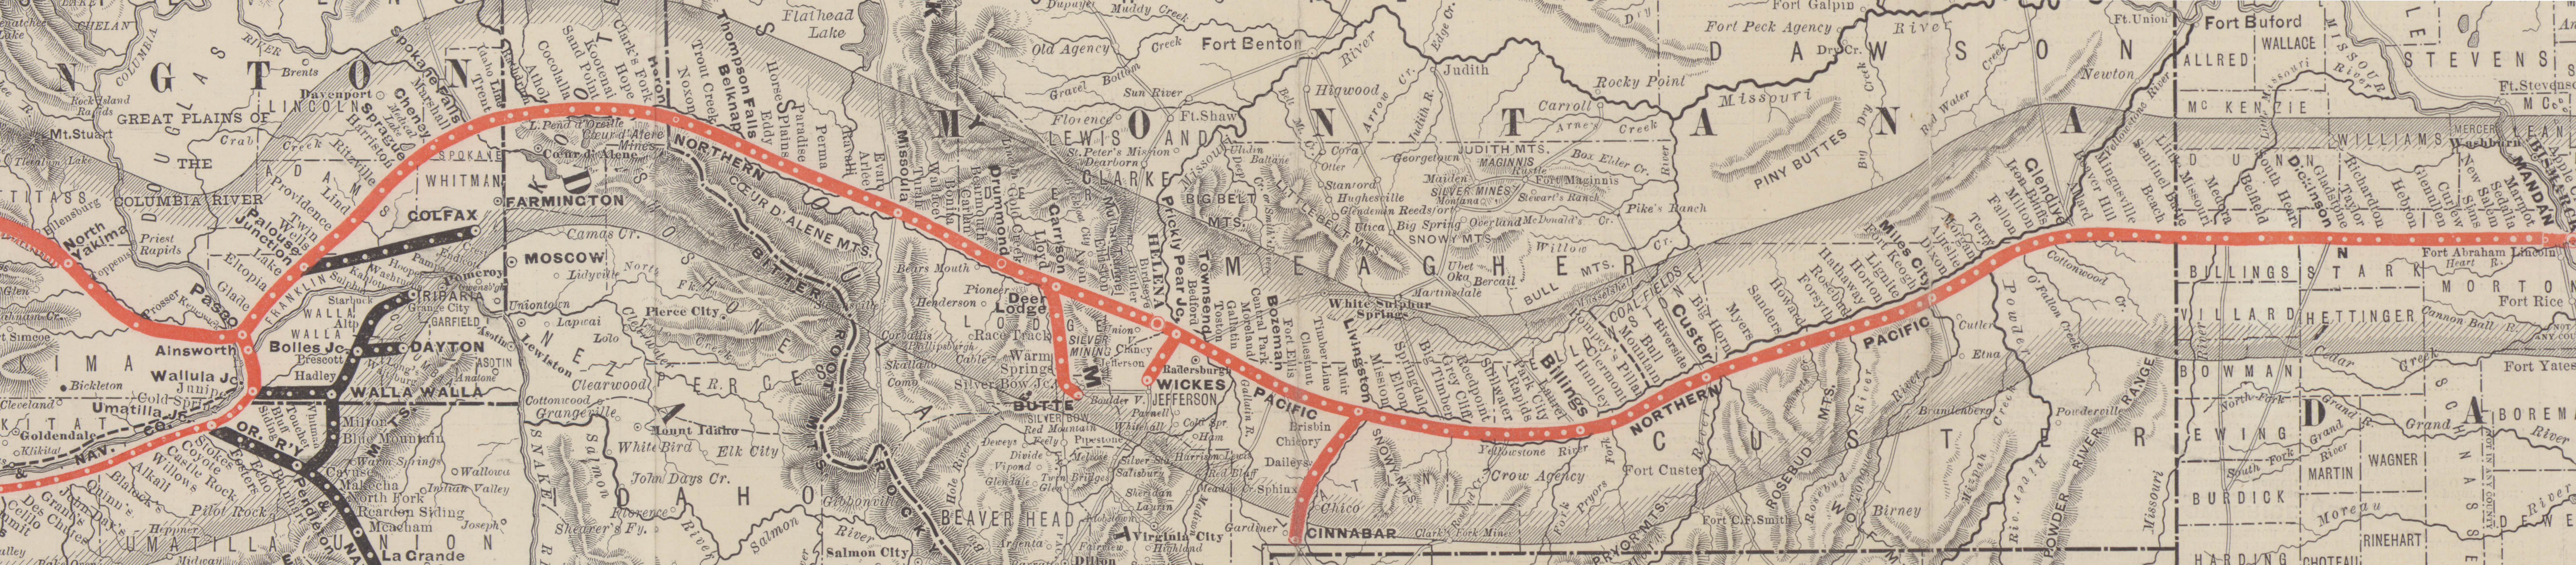 Image of Northern Pacific Railway map